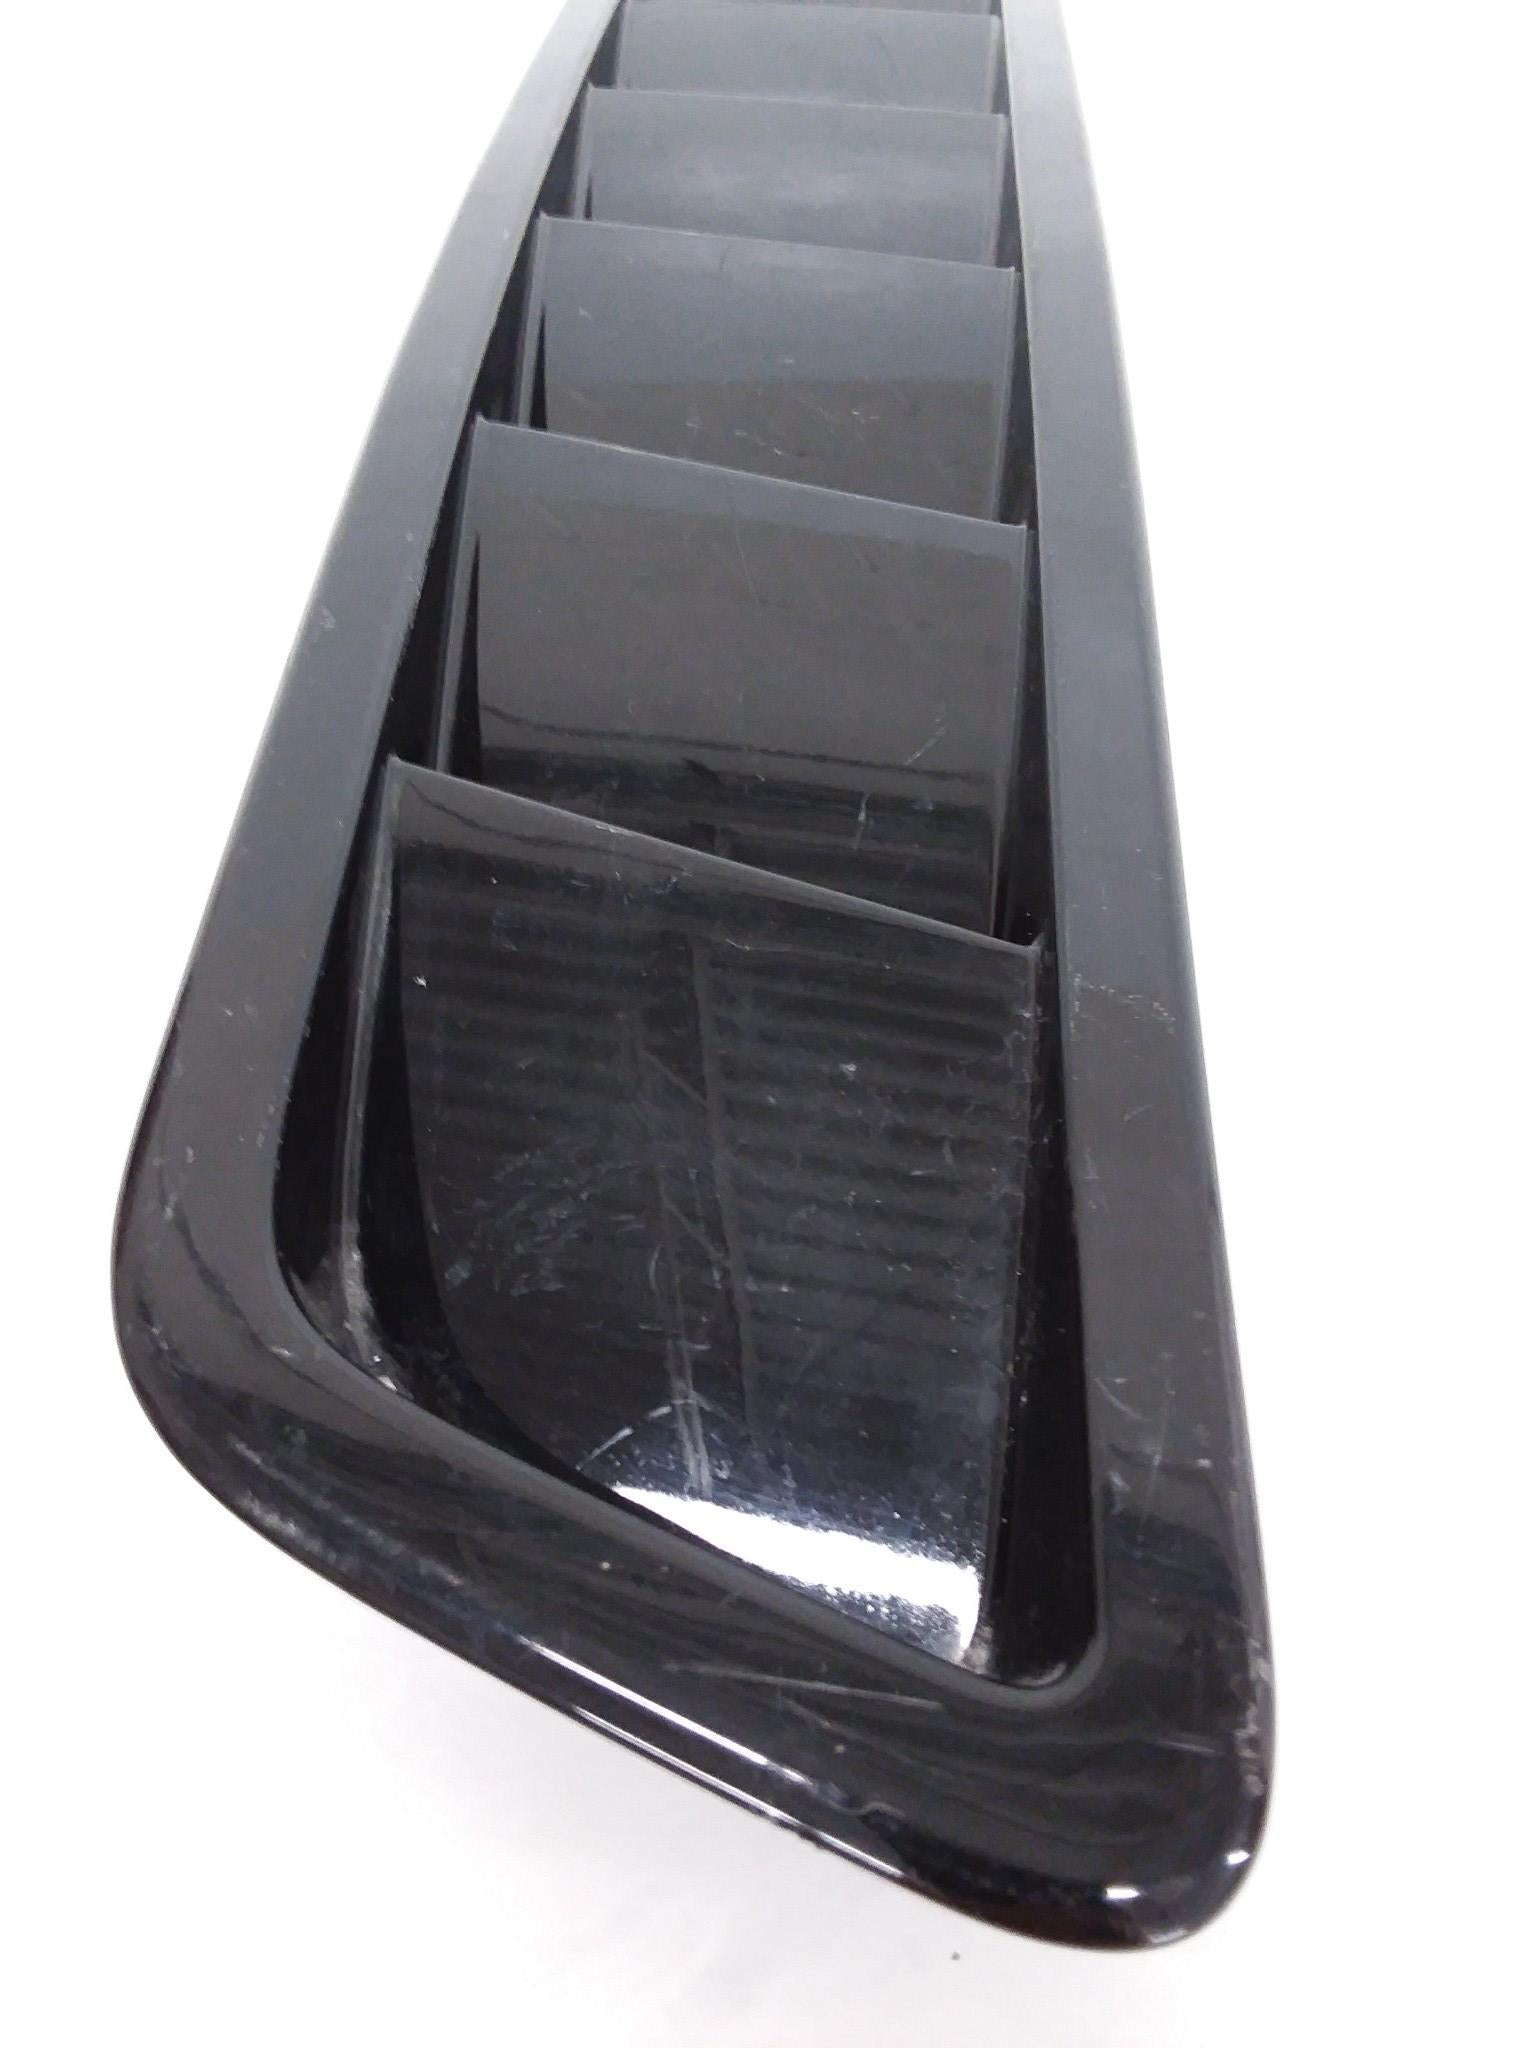 13-14 FORD MUSTANG GT 5.0 V8 HOOD VENT HEAT EXTRACTOR OEM RH Passenger side OEM - Click Receive Auto Parts